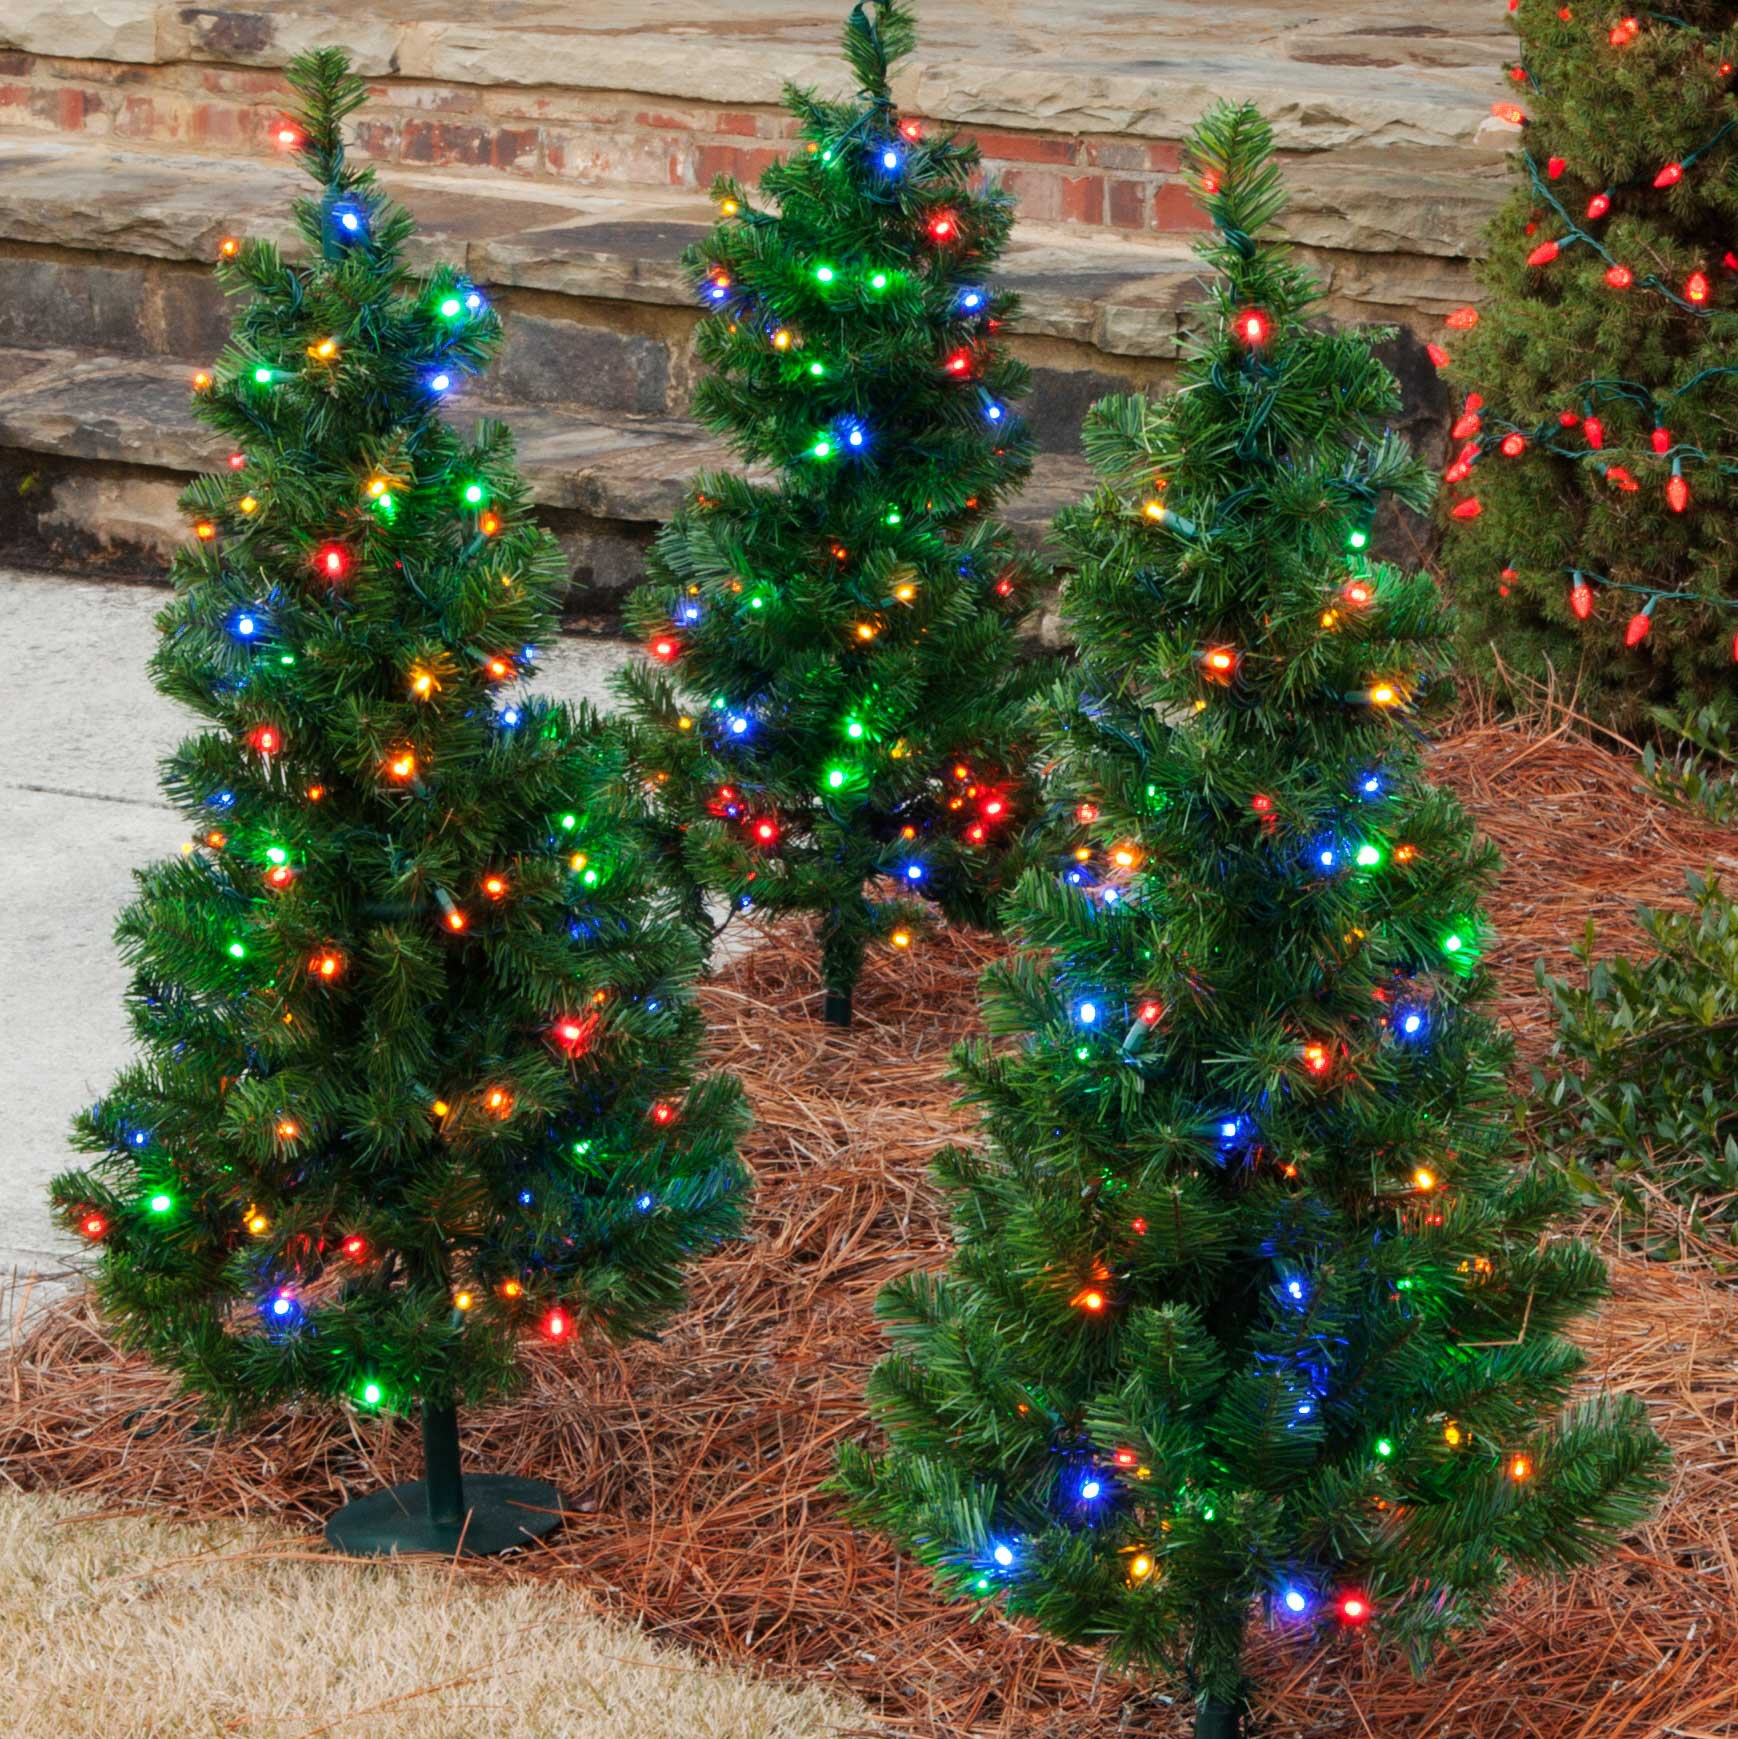 outdoor decorations 3 walkway pre lit winchester fir tree 100 multicolored led lamps - Outdoor Christmas Trees